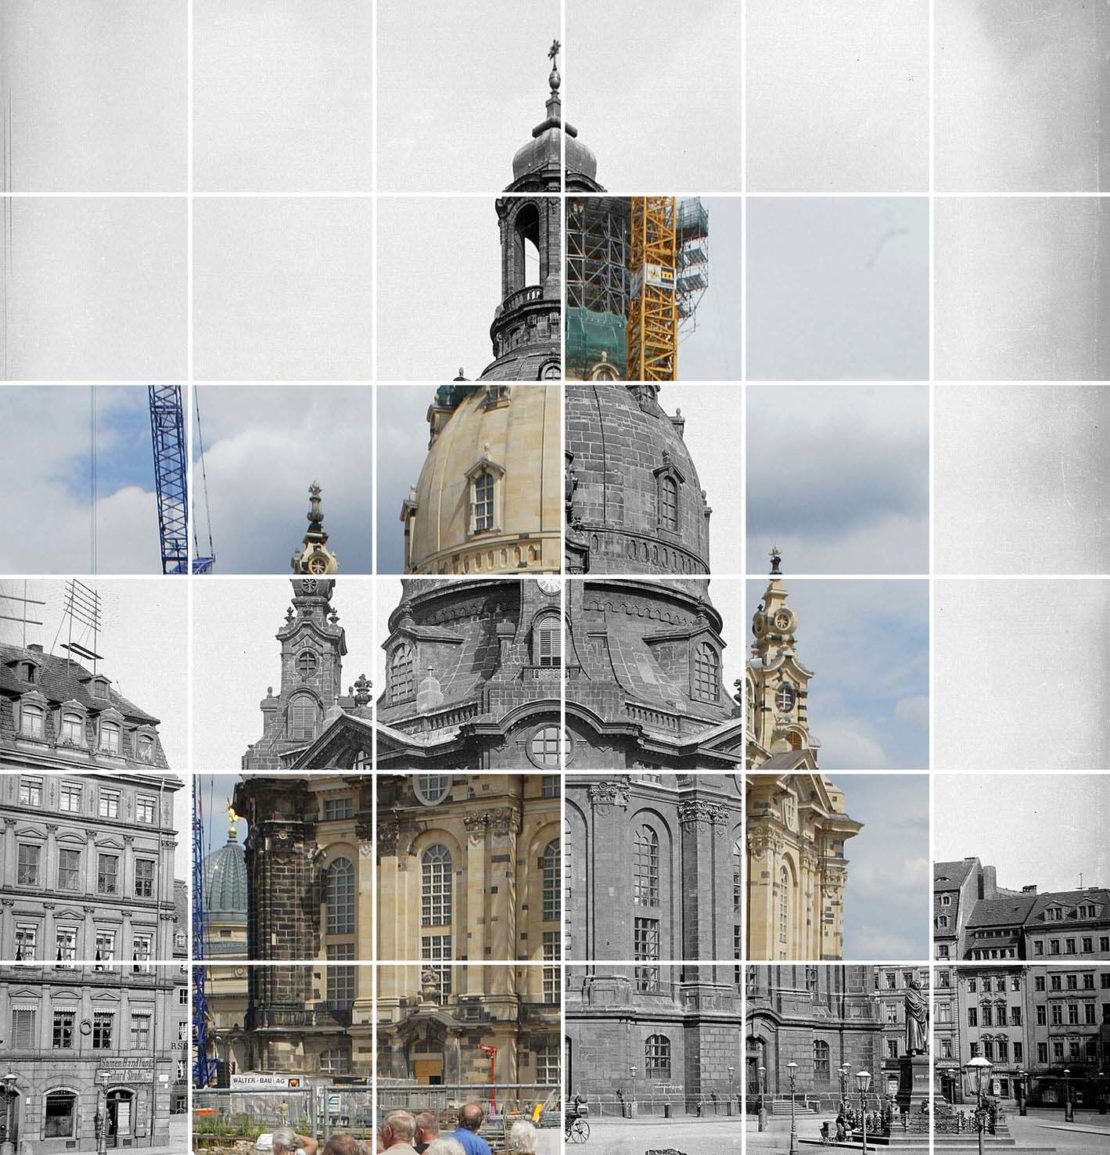 Photo montage of Dresden's baroque Frauenkirche before it was destroyed in 1945 and after it was rebuilt in 2005